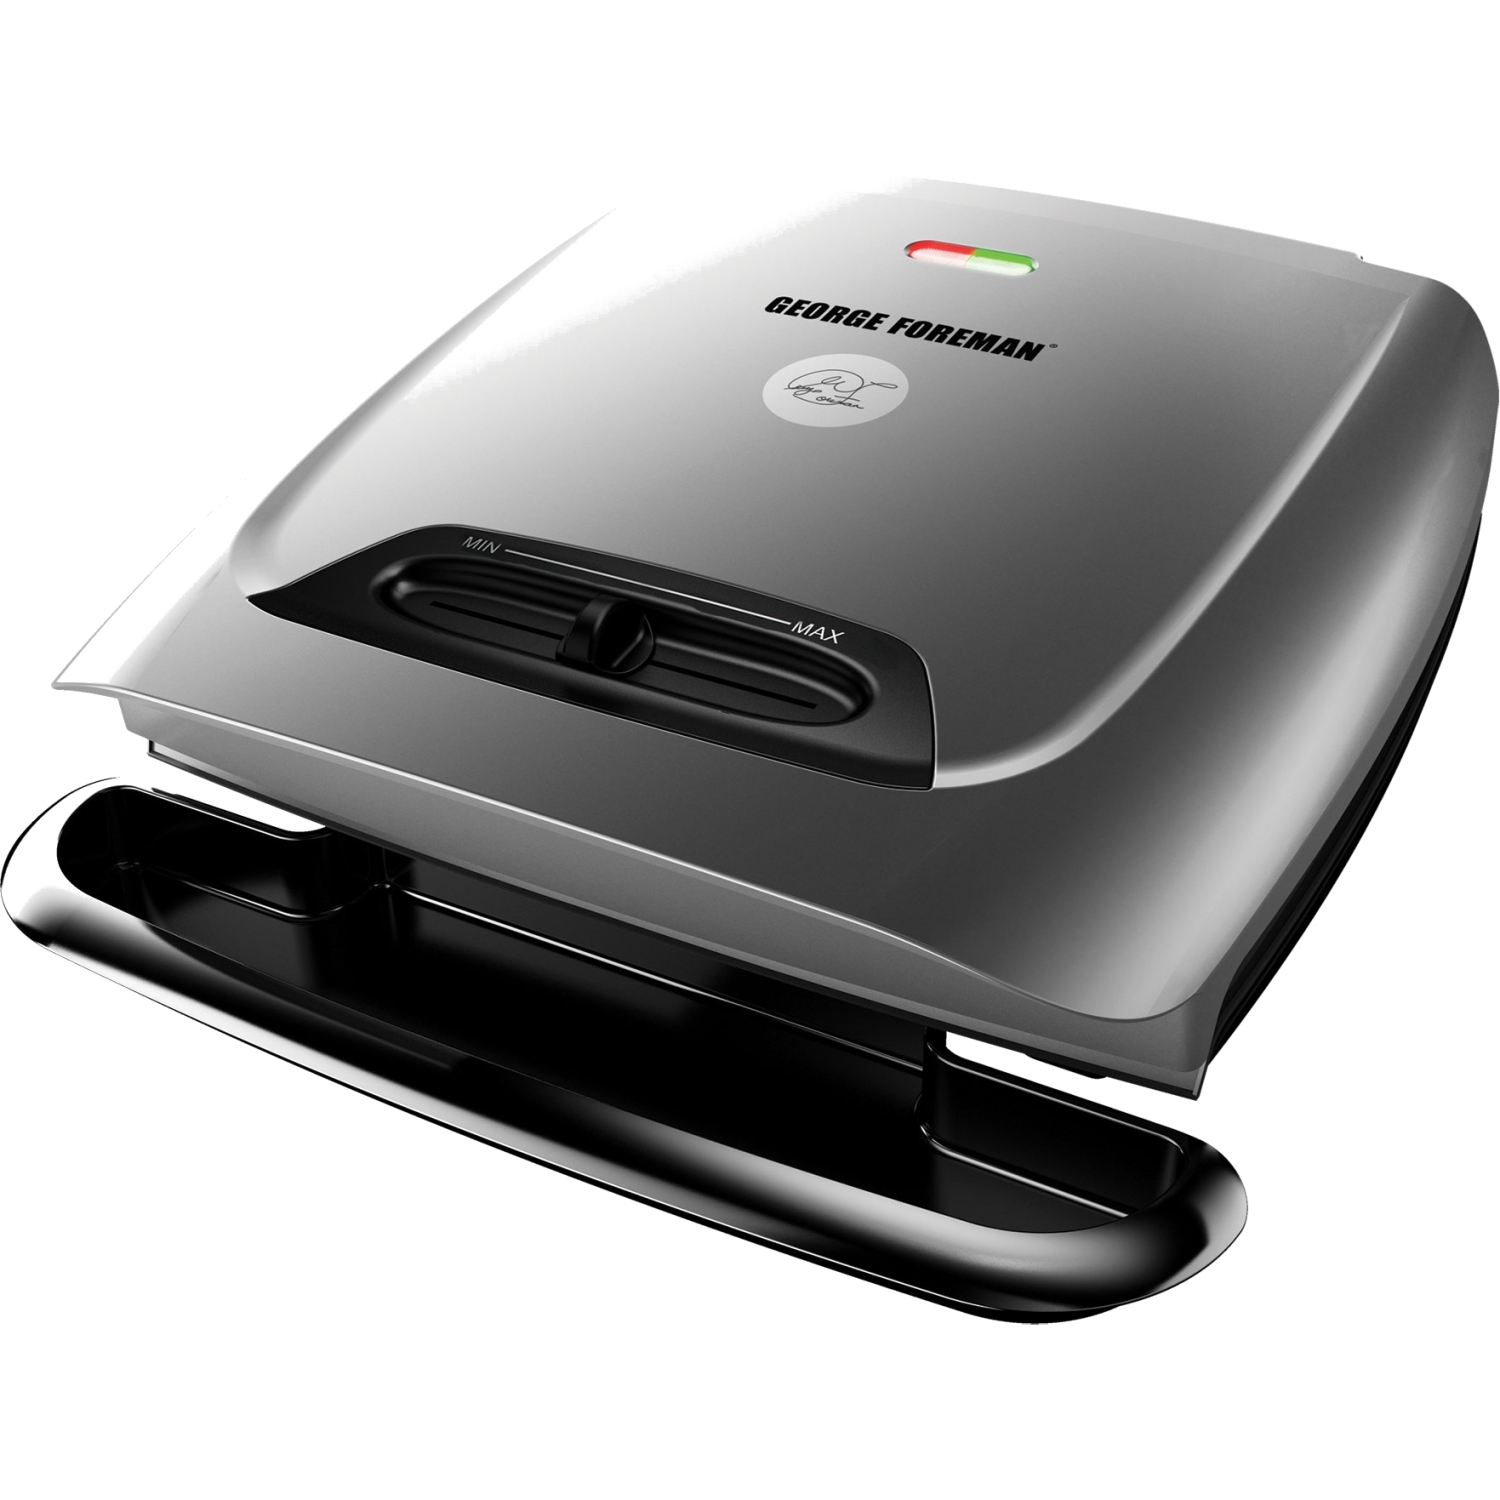 George Foreman Classic Electric Grill With Variable Temperature Control, GR2121P